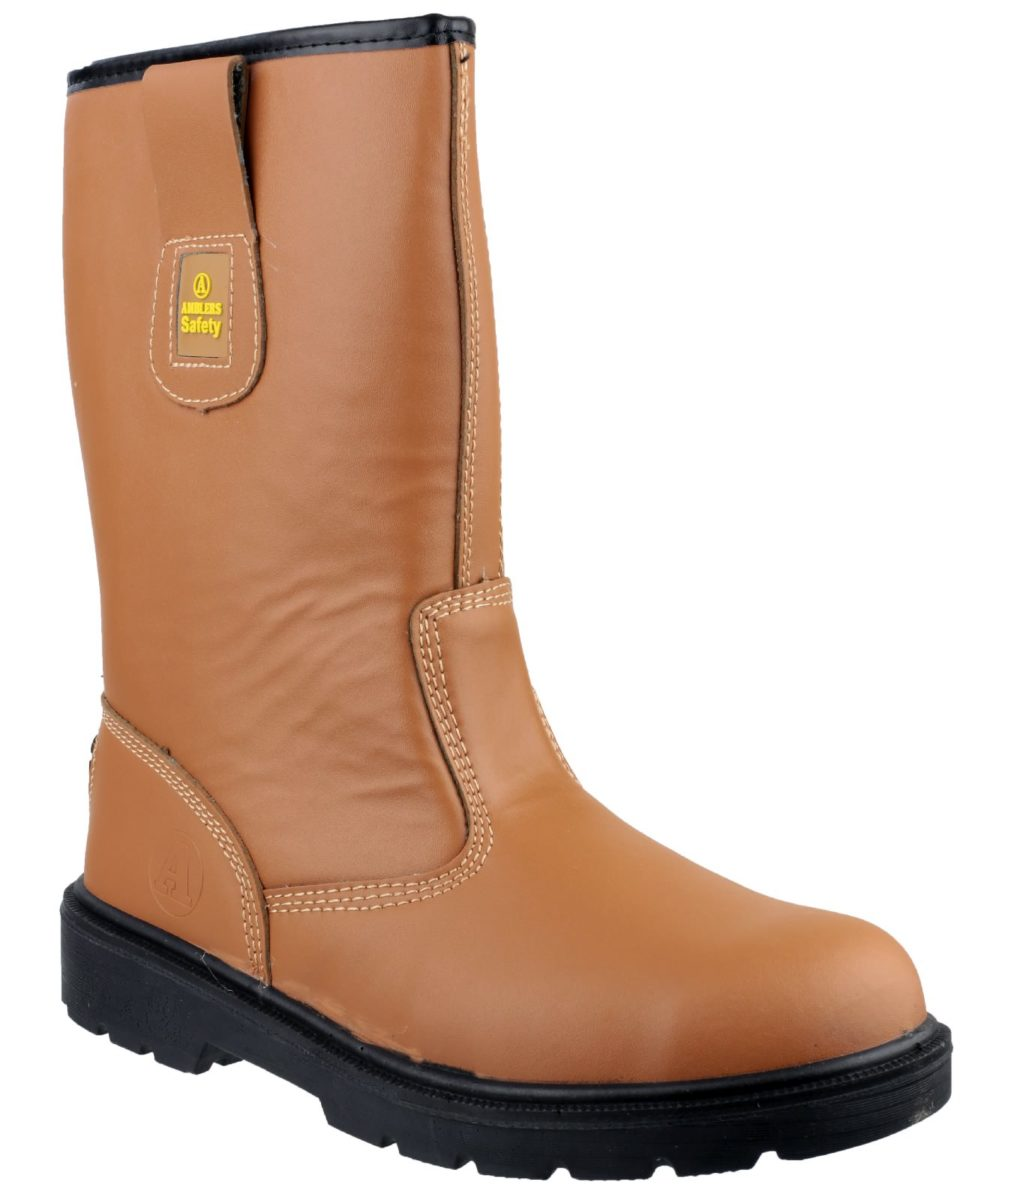 Amblers FS124 Lined Rigger Safety Boot